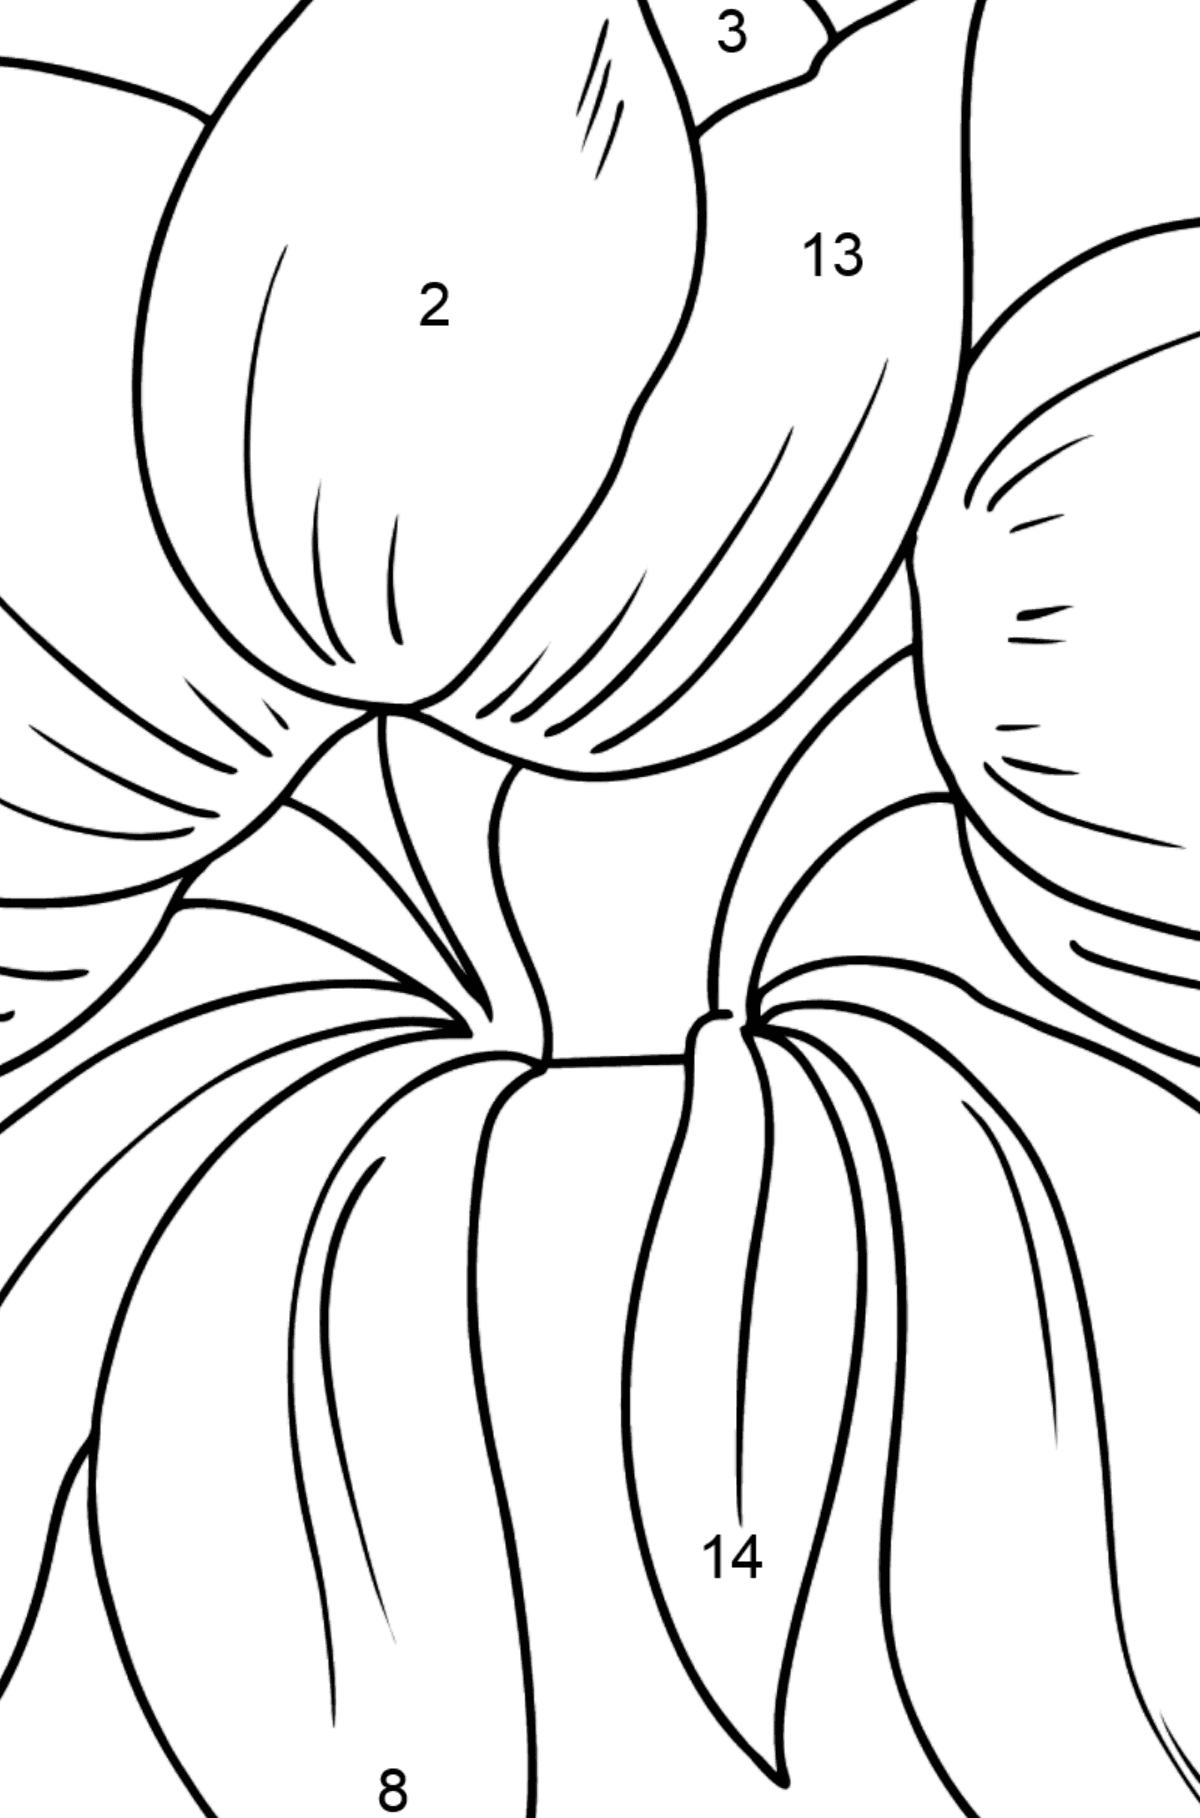 Flower Coloring Page - Tulips - Coloring by Numbers for Kids